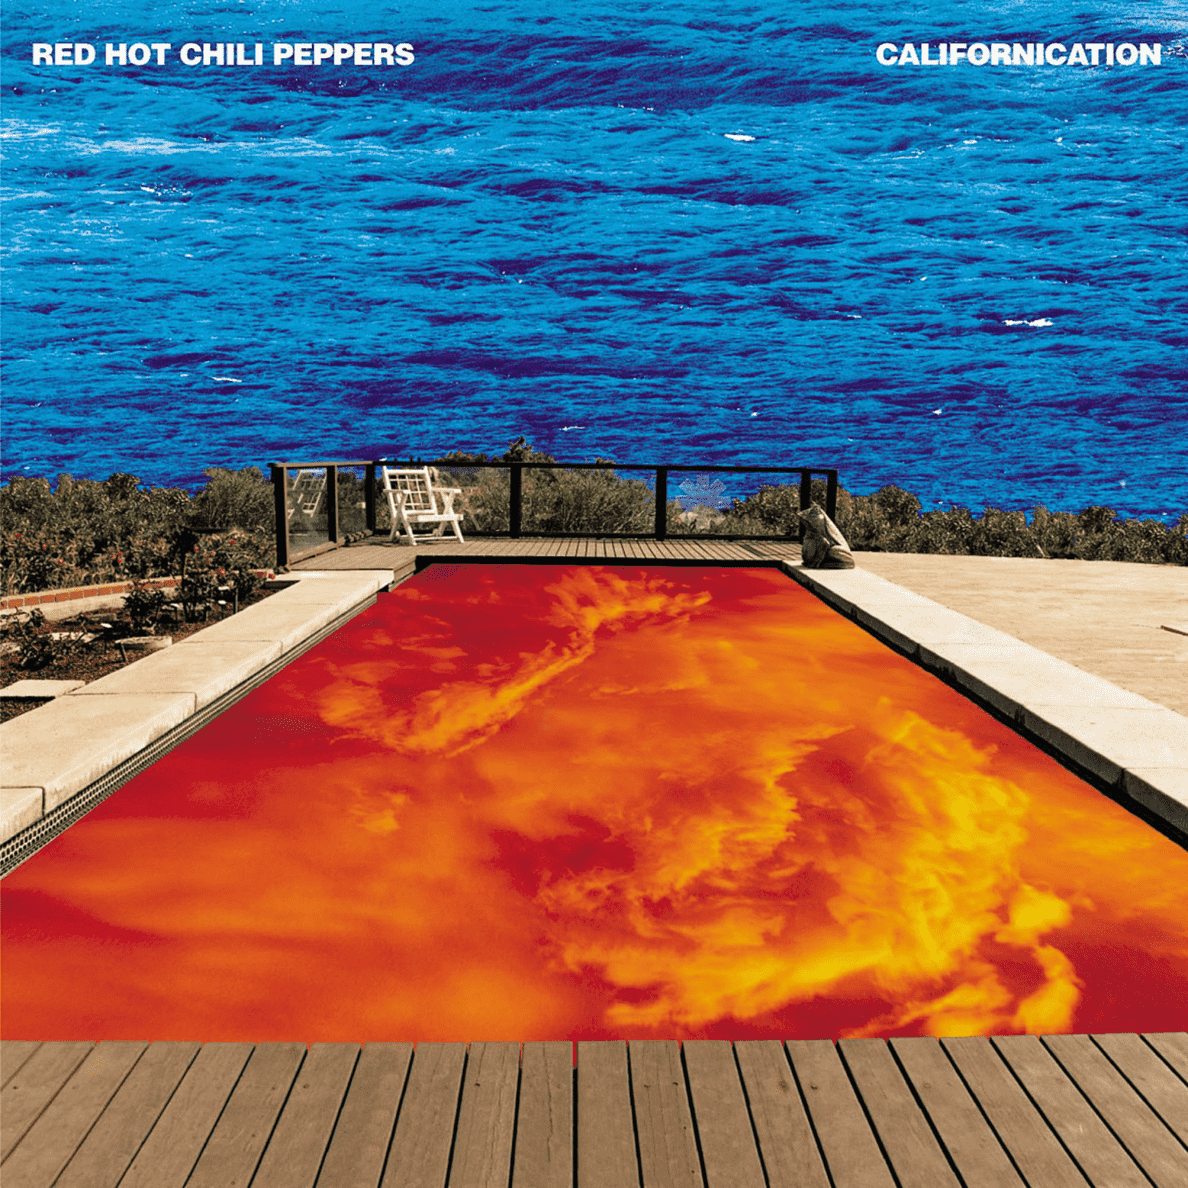 Californication Red Hot Chili Peppers auf Vinyl